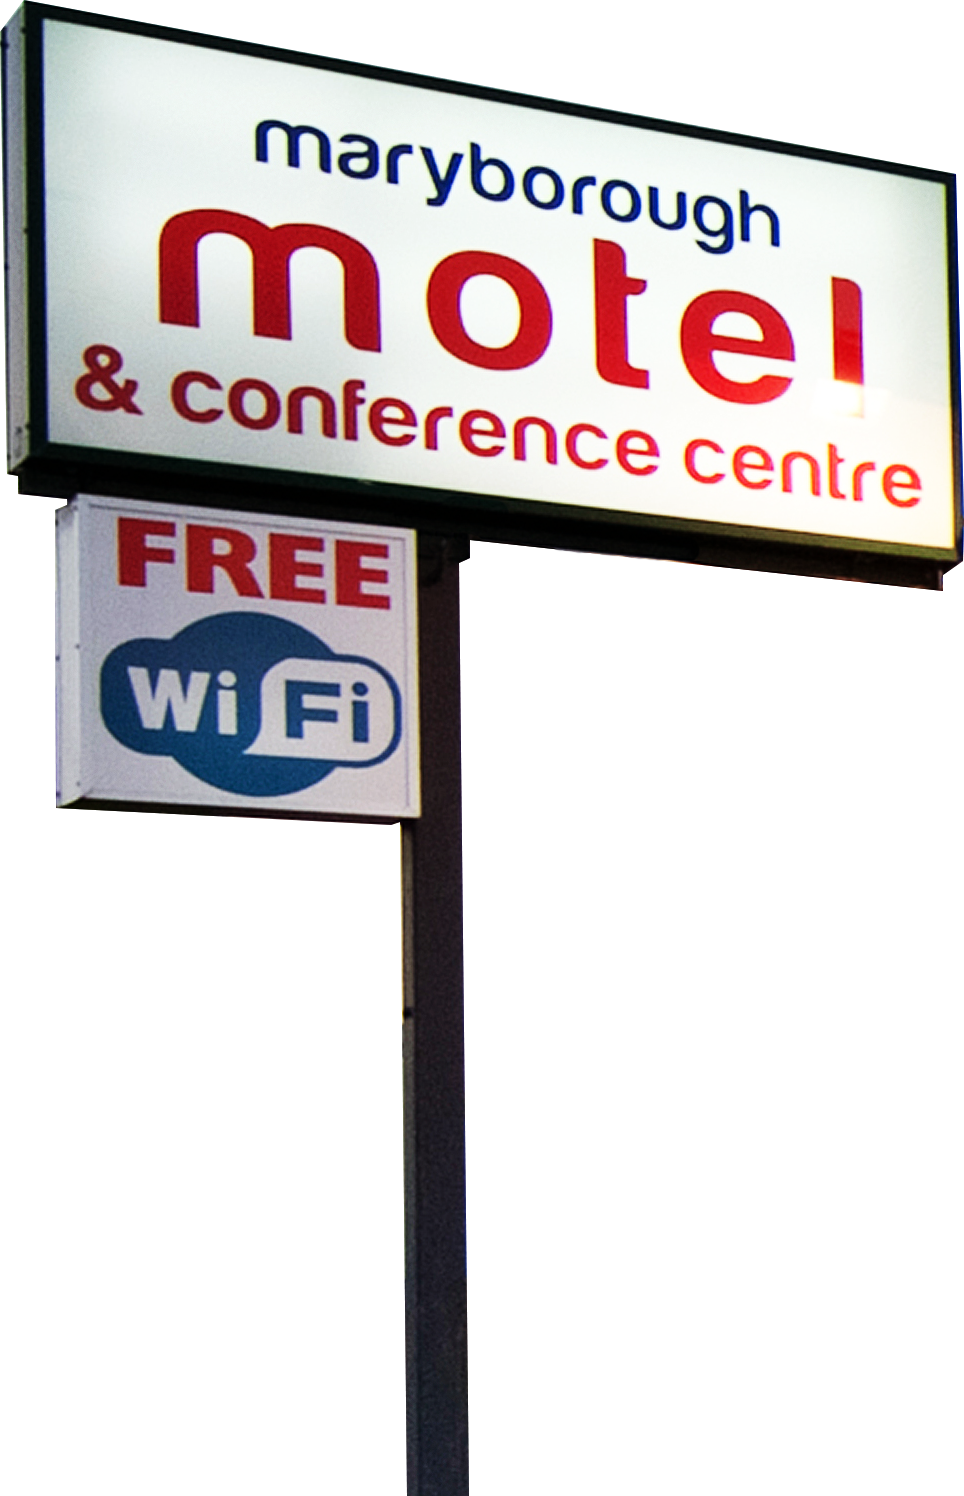 Maryborough Motel & Conference Centre Sign